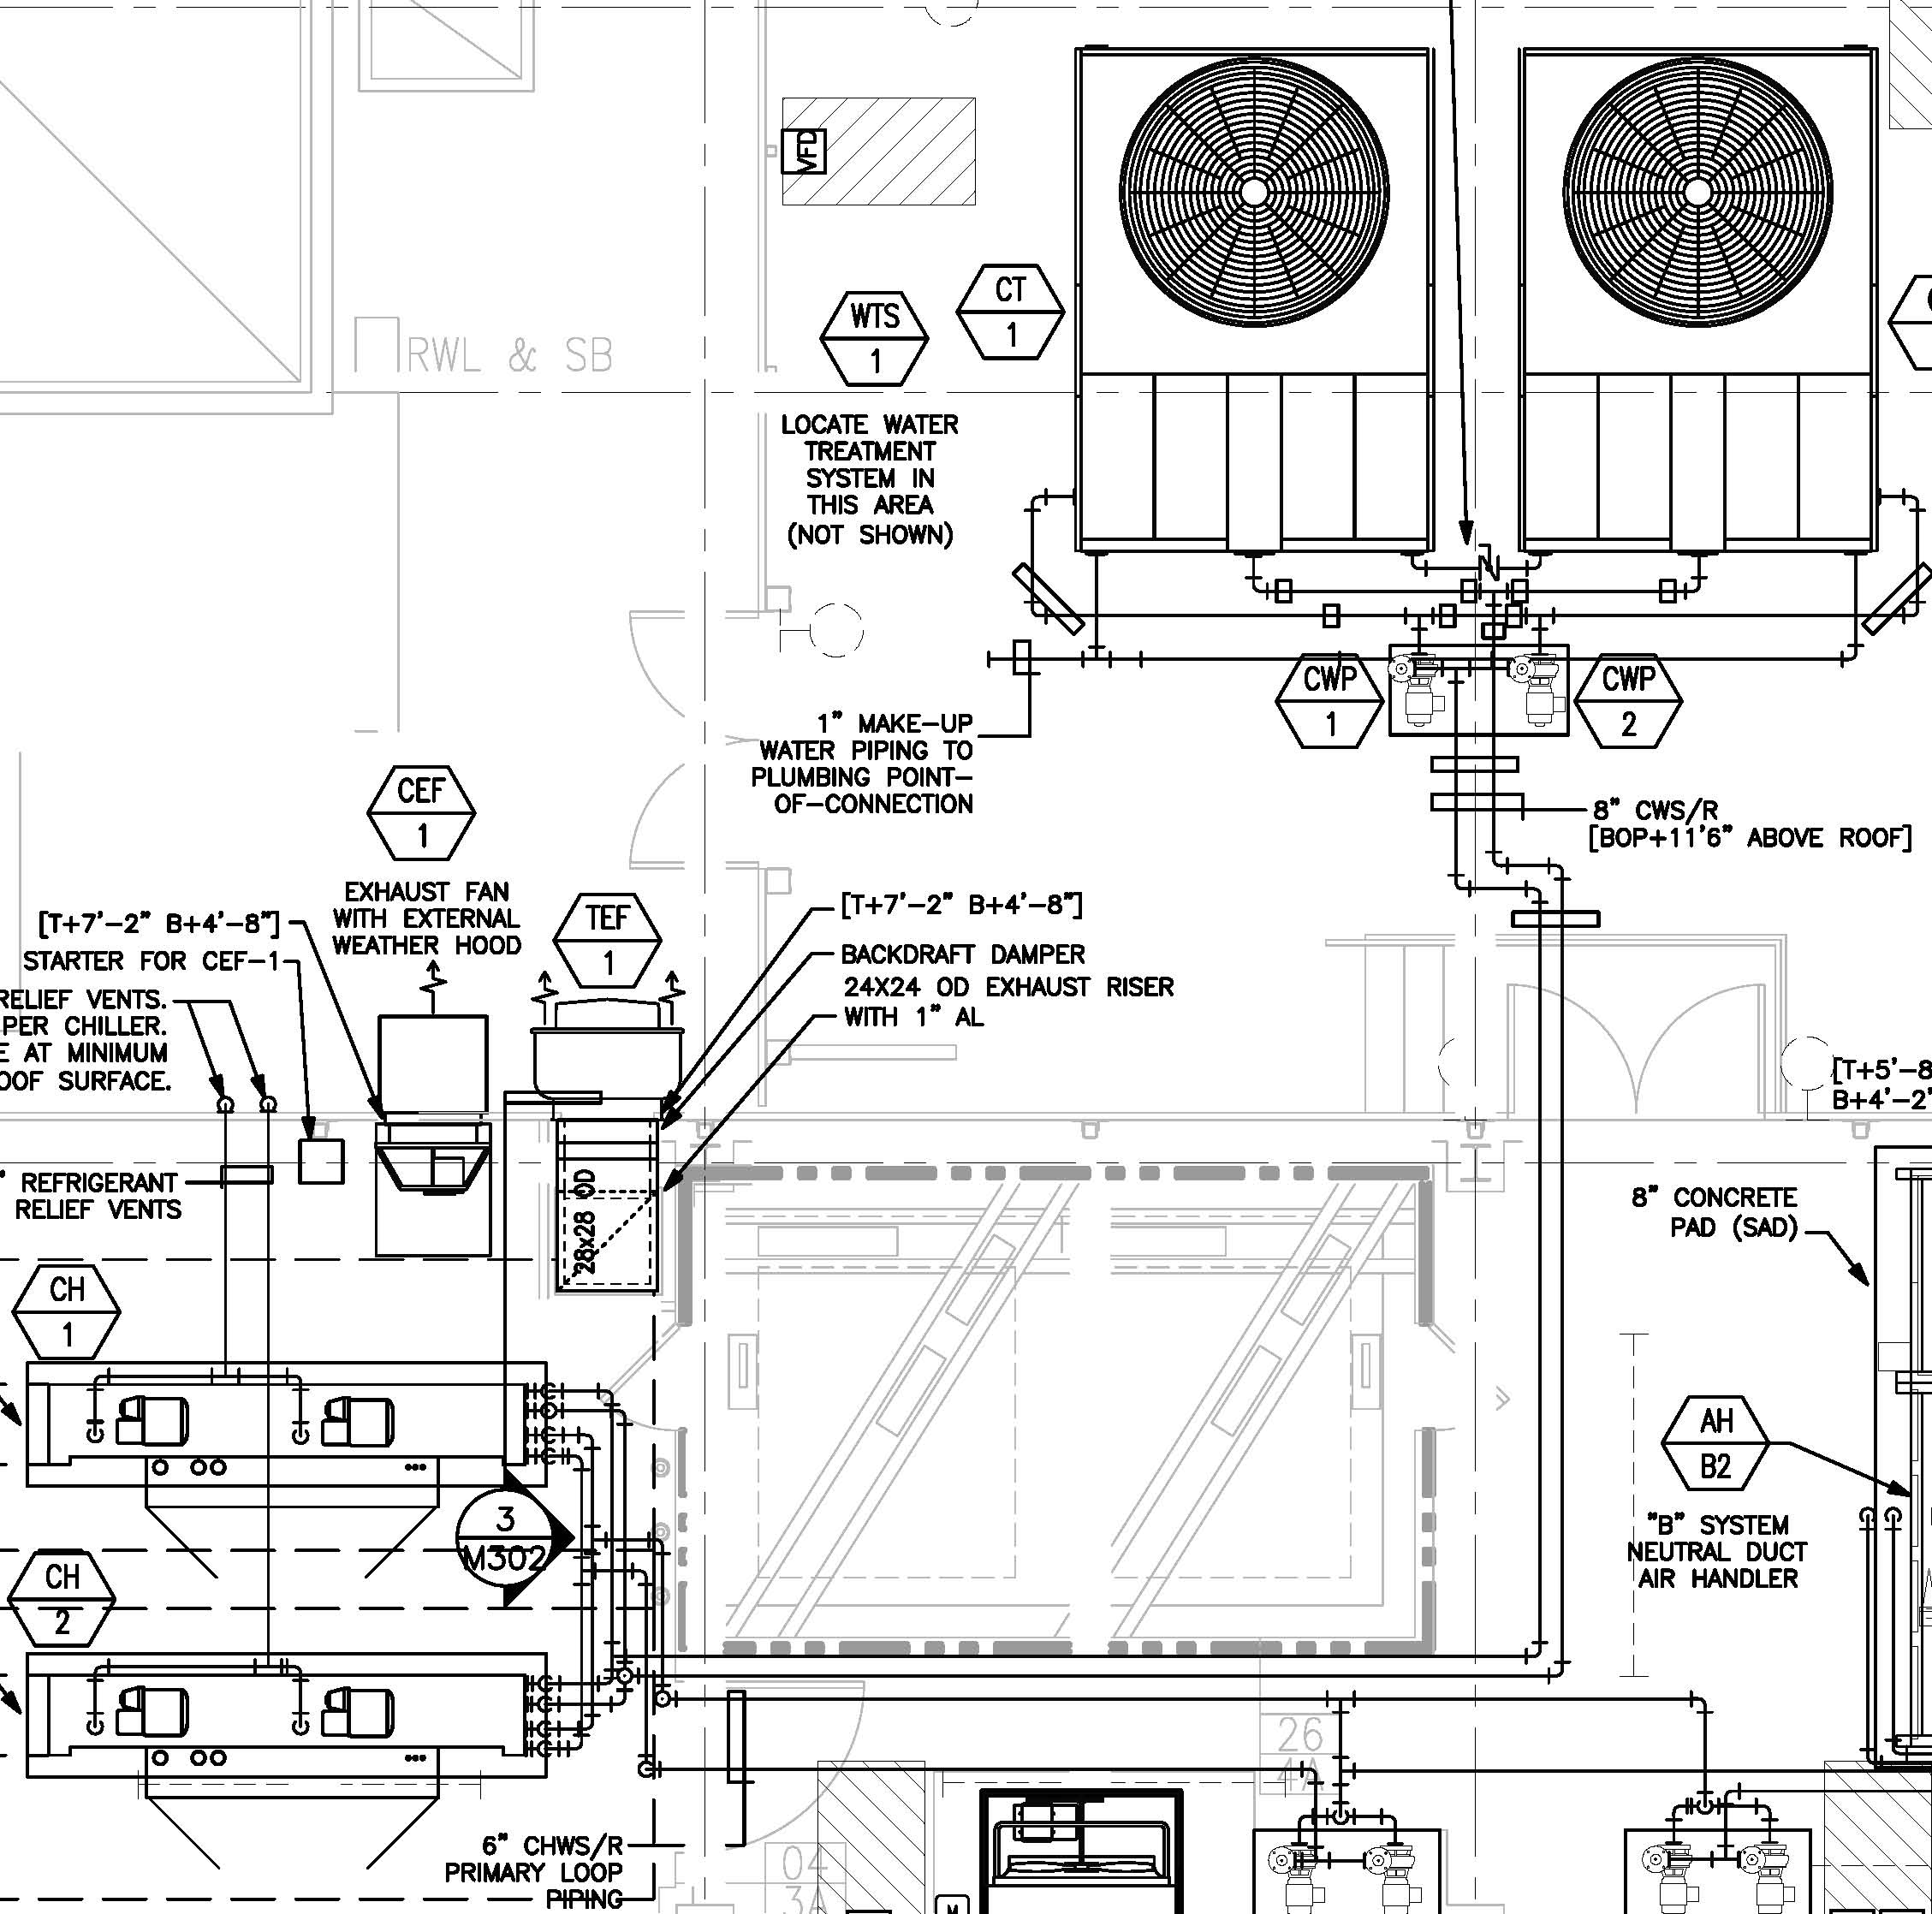 Chilled Water Piping Diagram on primary secondary chilled water system with buffer tank